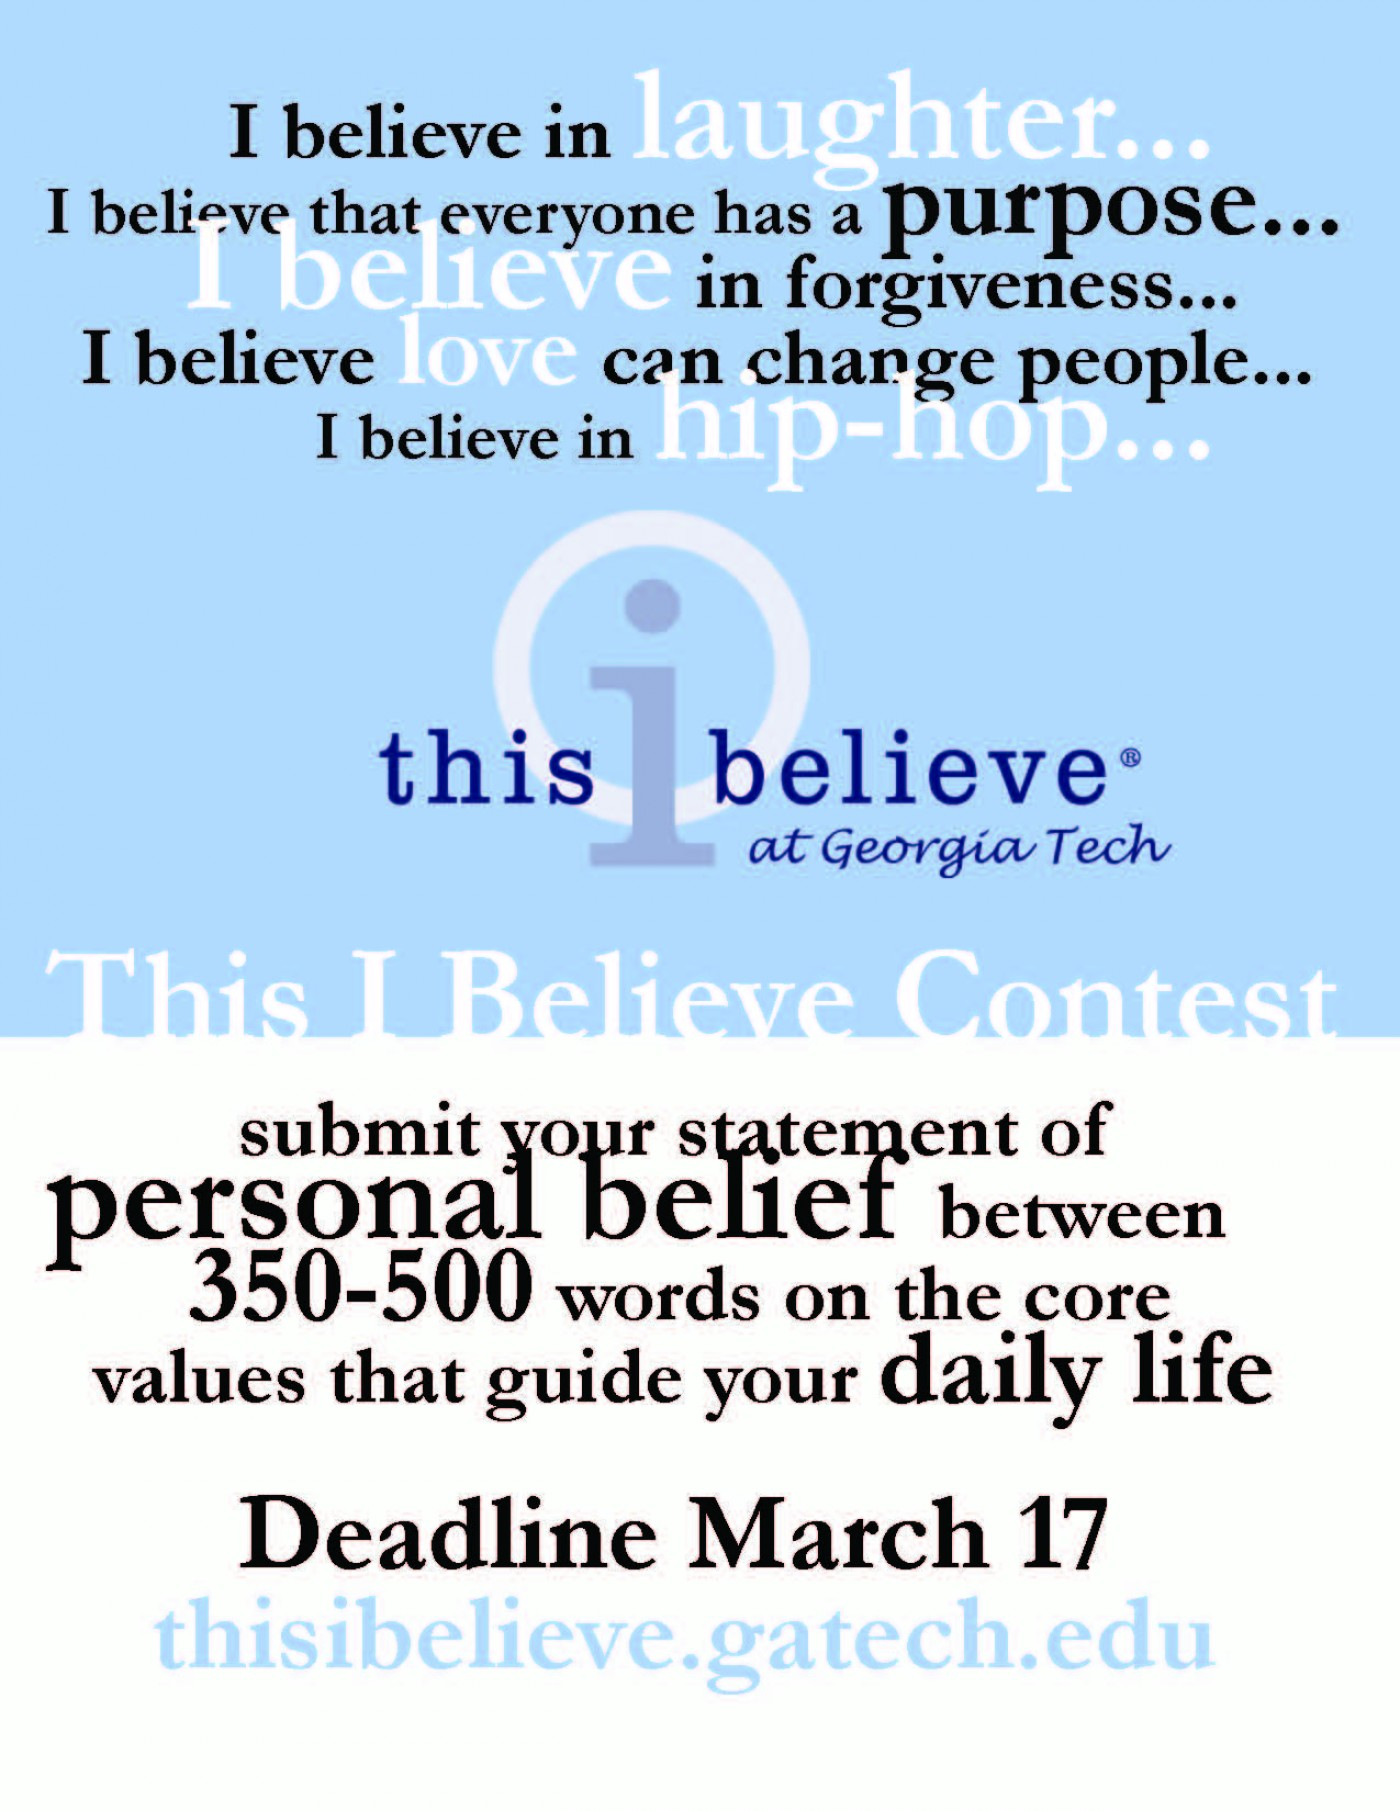 022 This I Believe Essay Topics Example Thisibelieve8 Fearsome Funny Prompt 1400